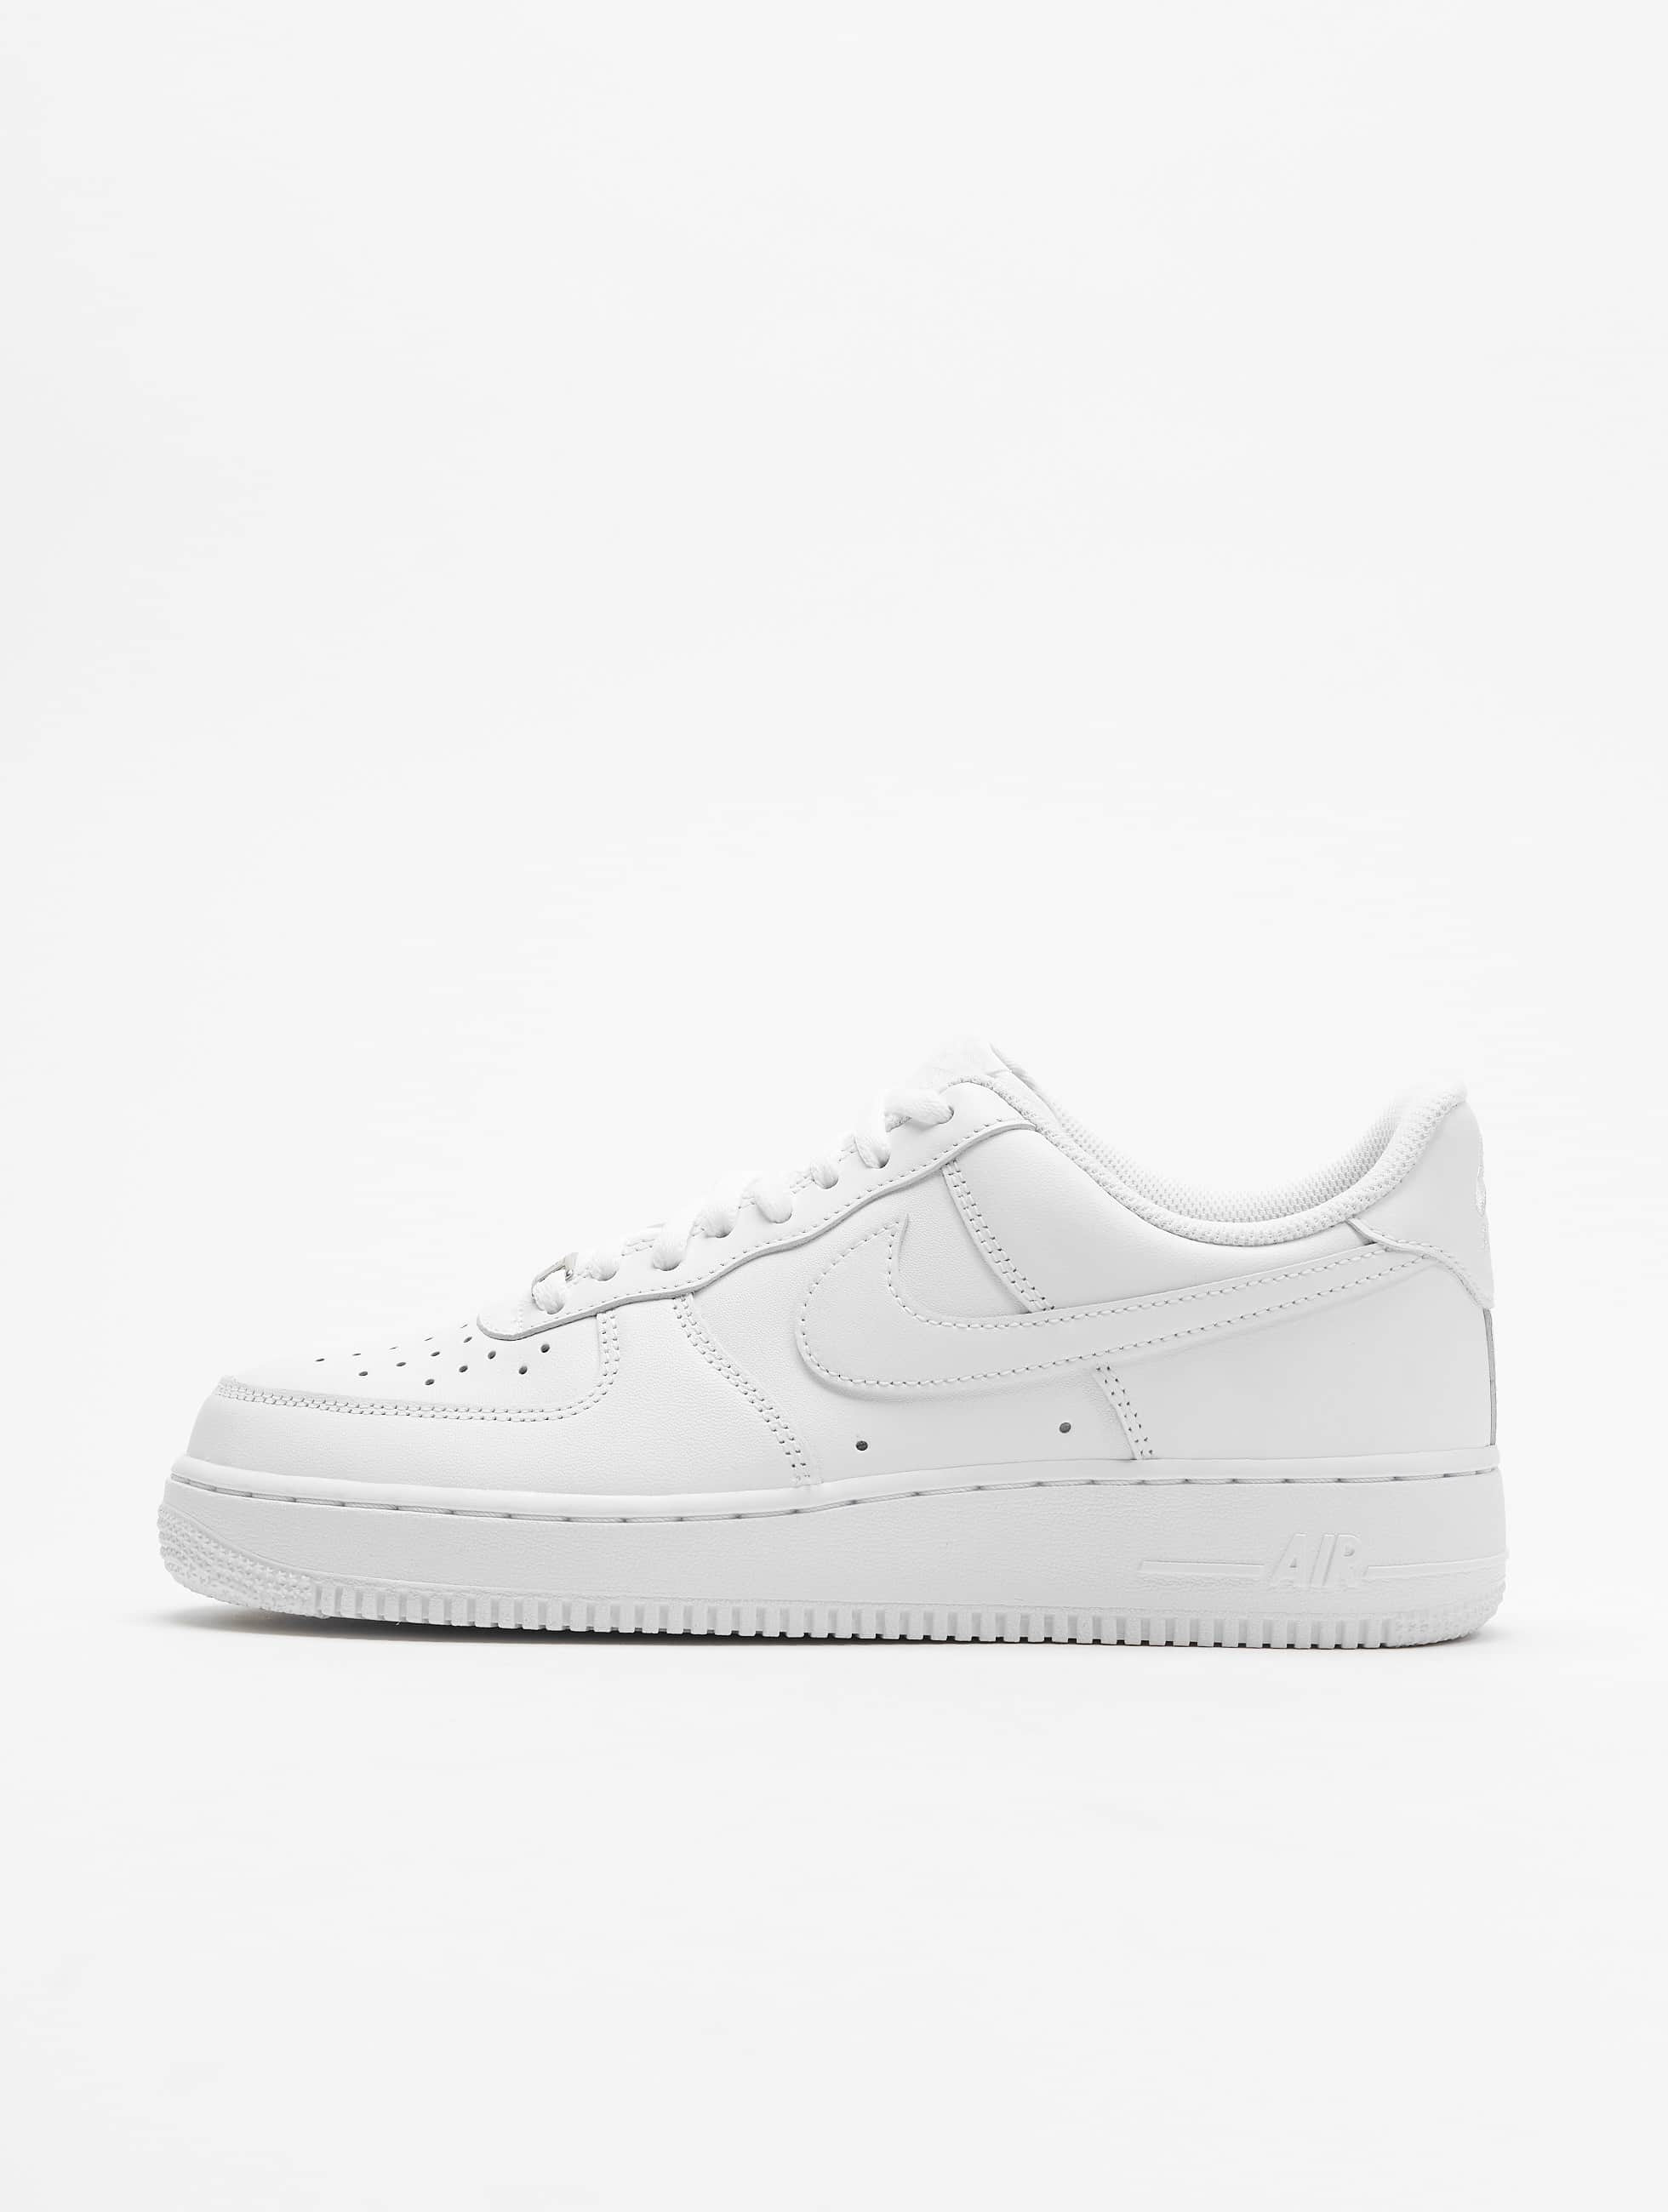 nike air force 1 weiß damen 39